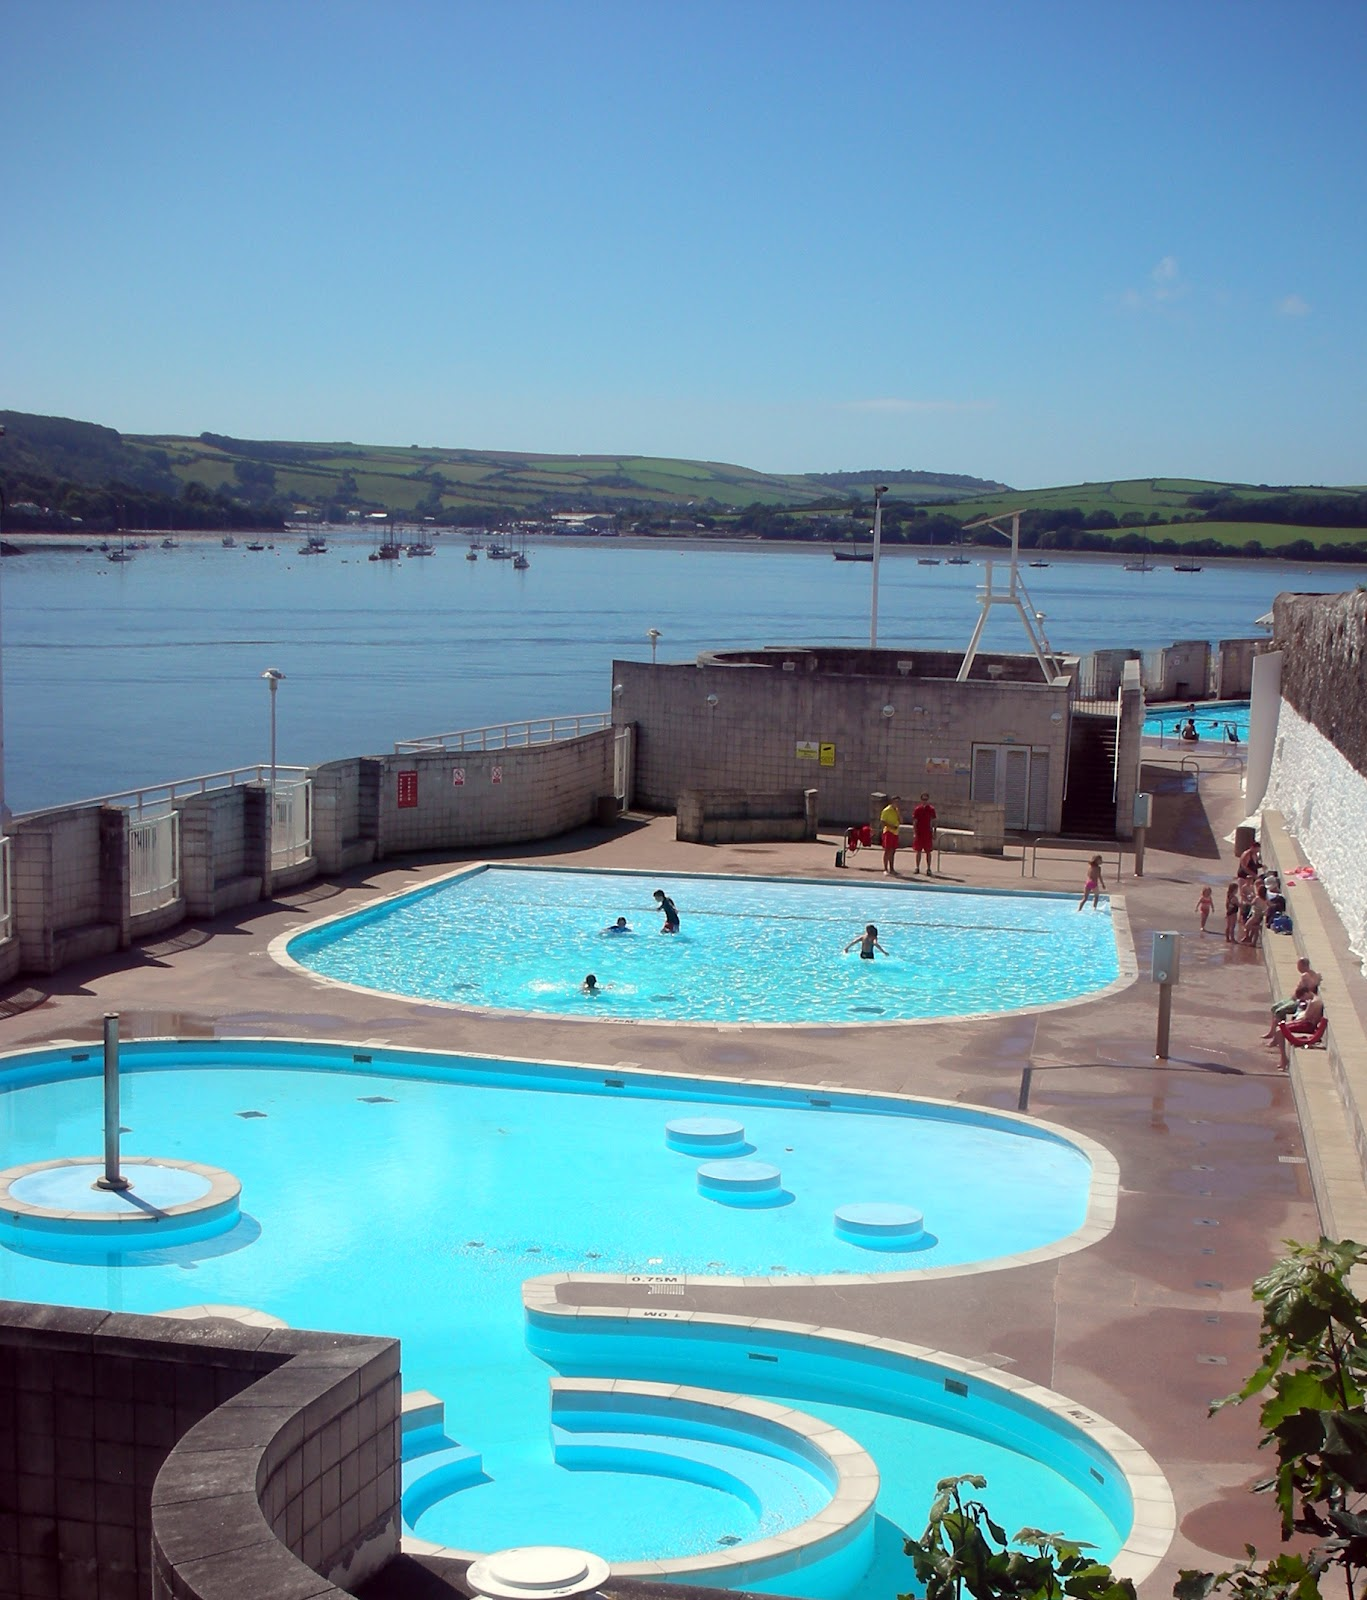 plymouth daily photo the mount wise lido